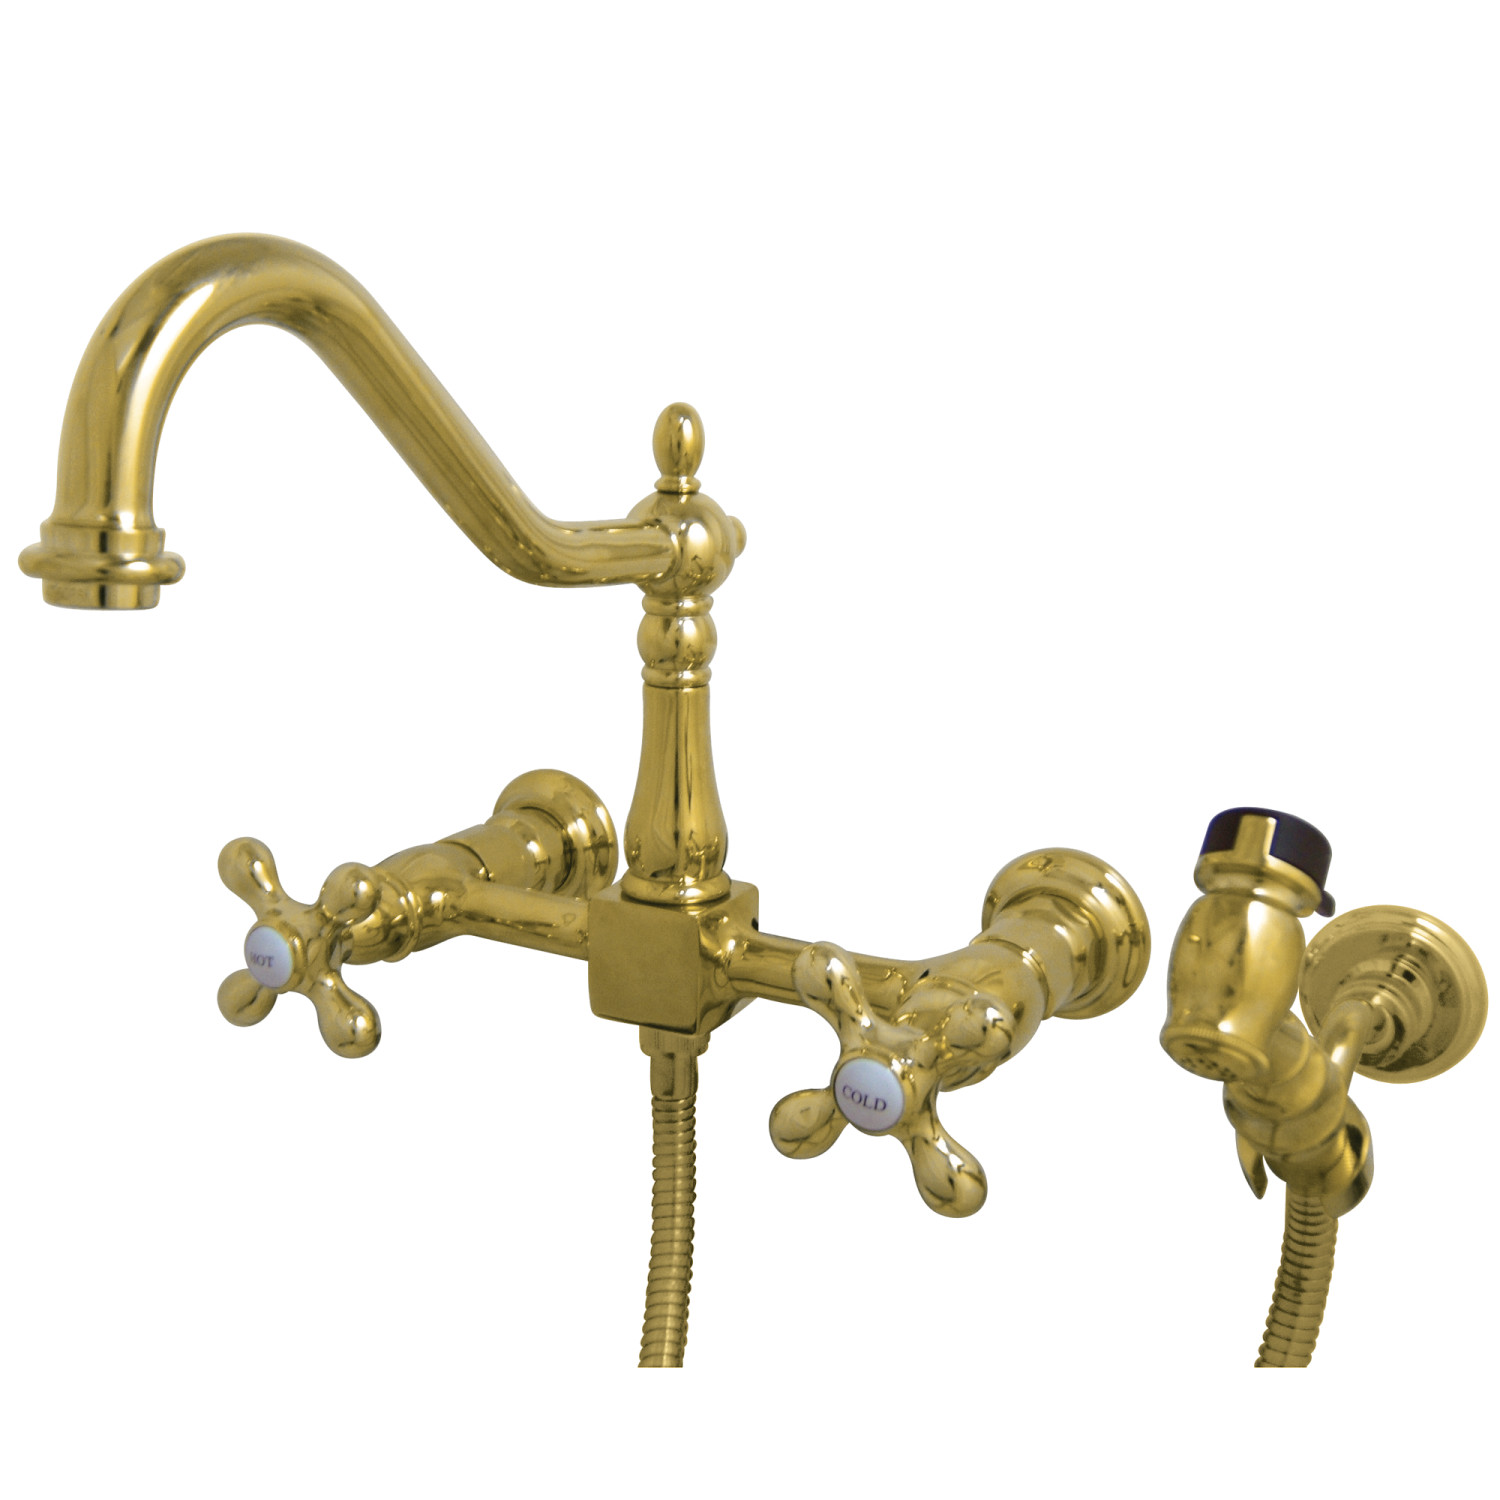 Elements of Design ES1242AXBS 8-Inch Centerset Wall Mount Kitchen Faucet  with Brass Sprayer, Polished Brass